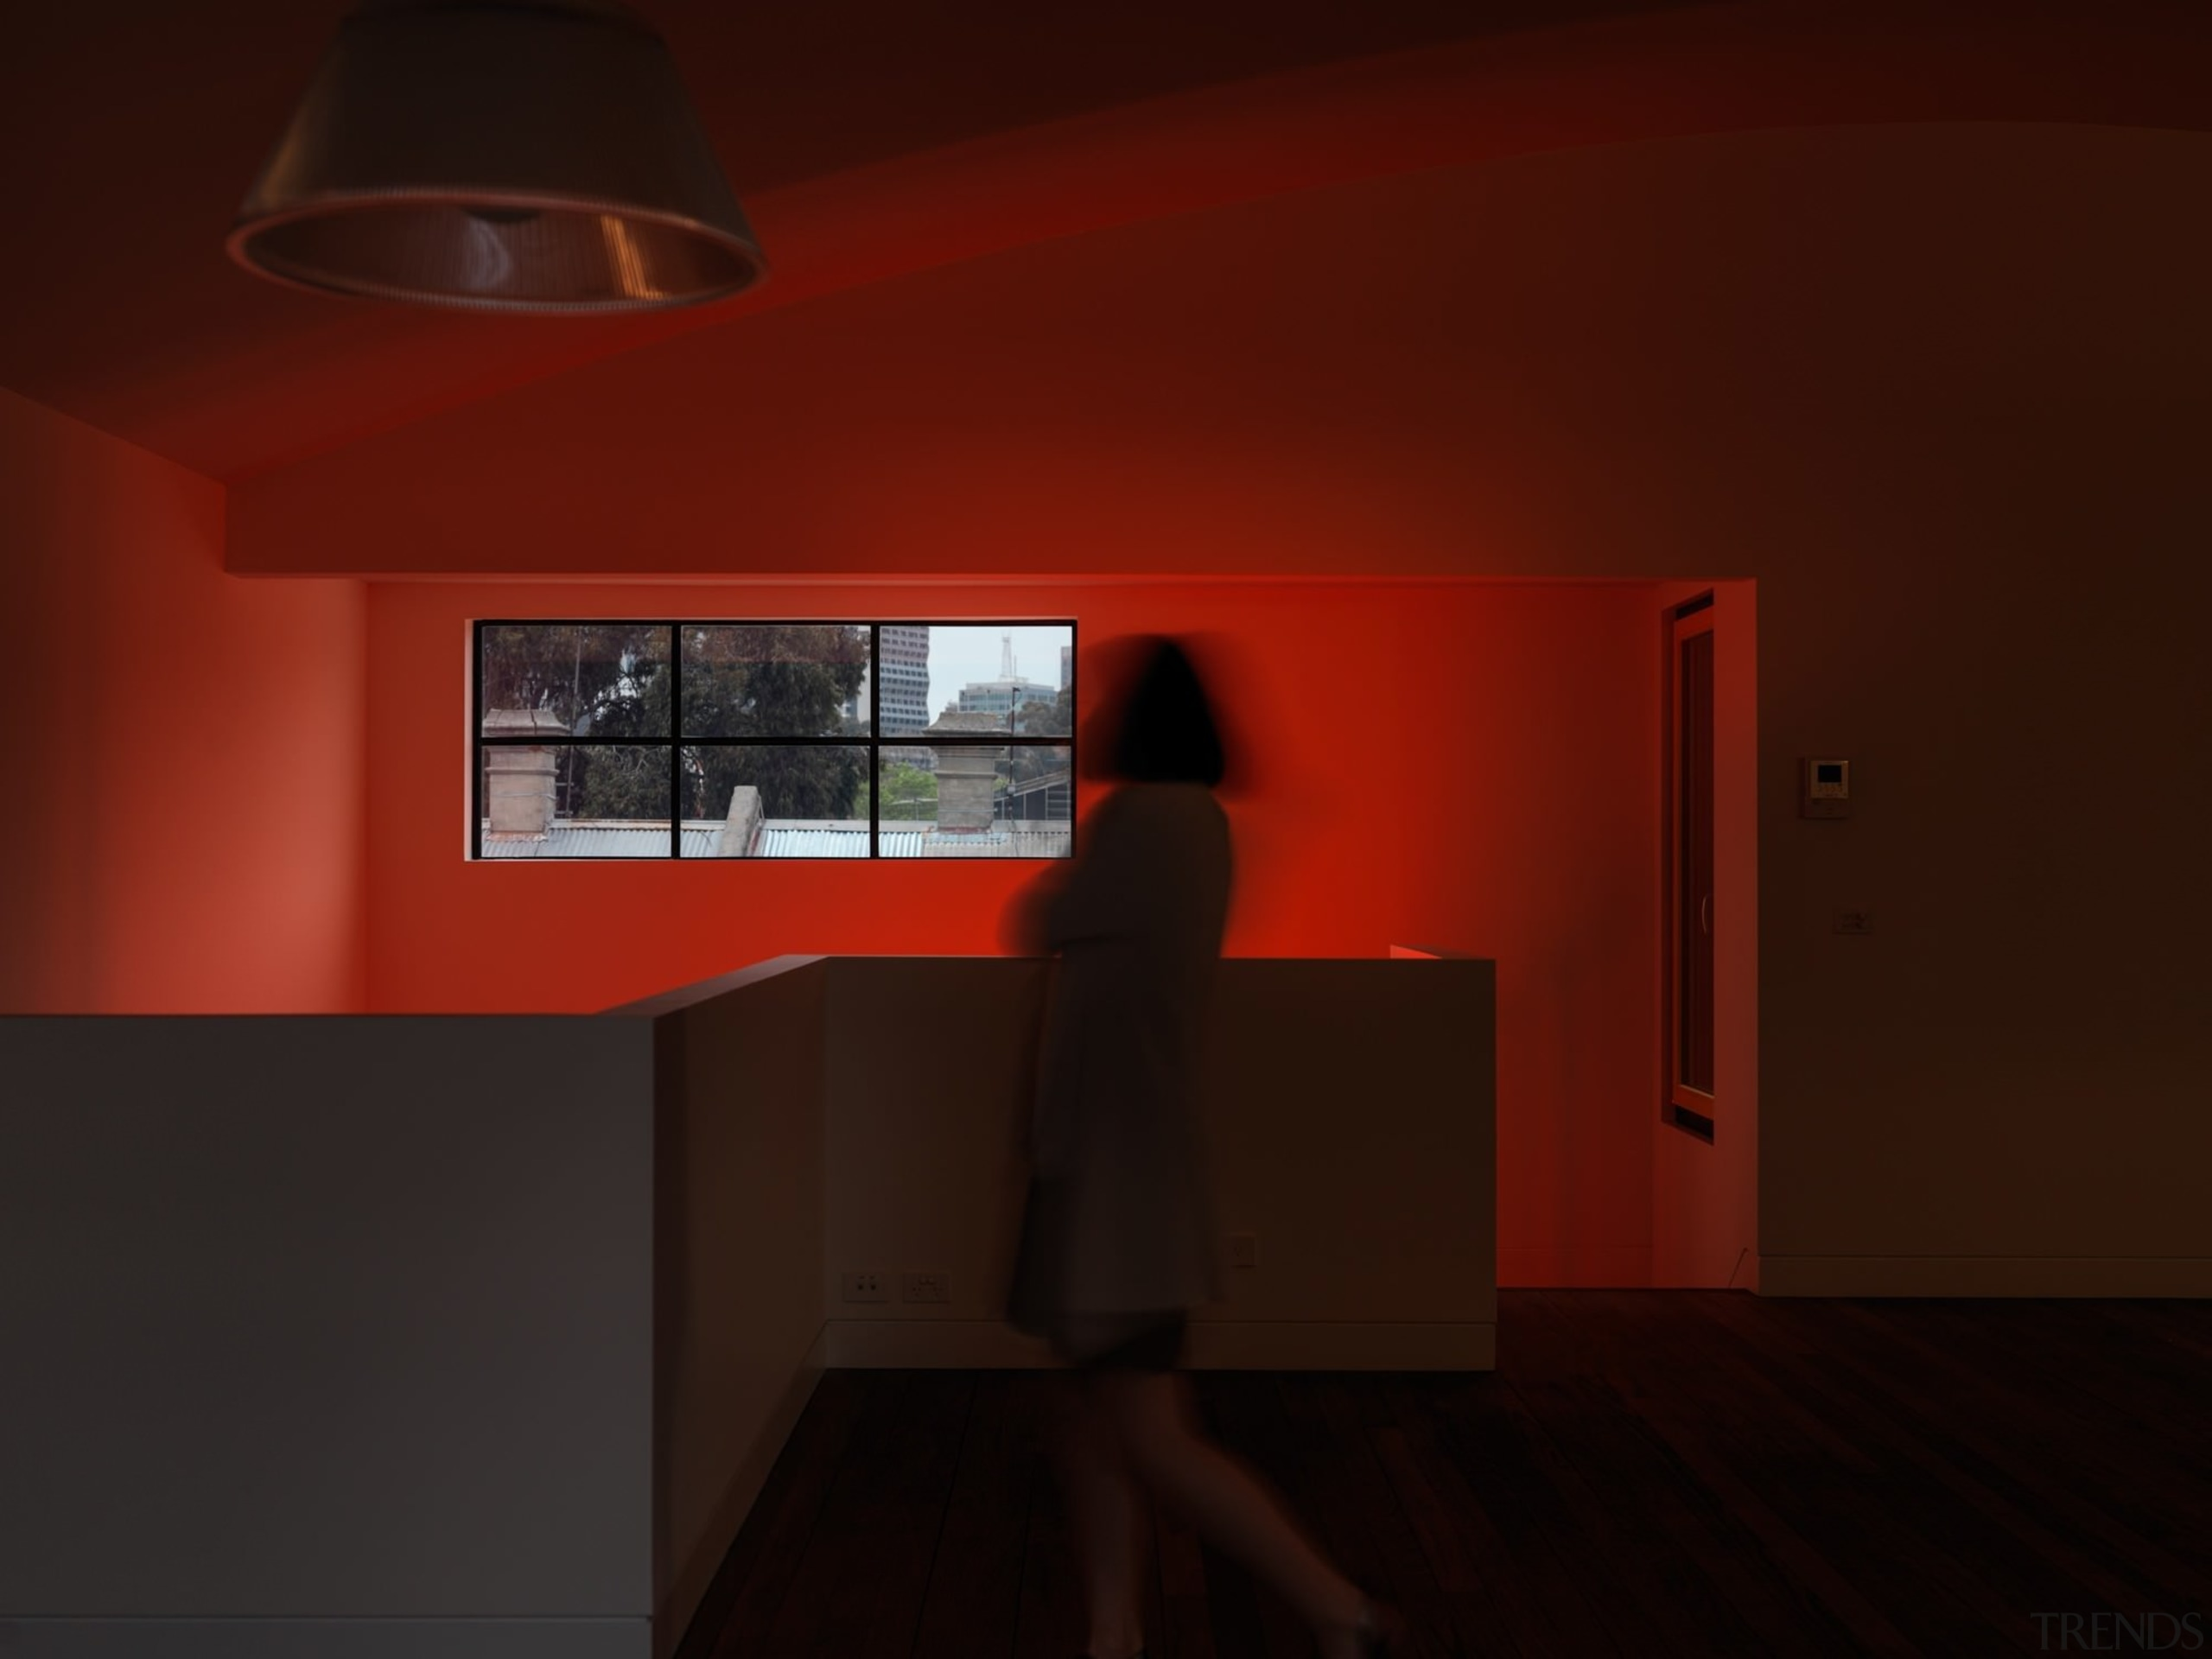 The red sign certainly stands out, even when architecture, ceiling, darkness, daylighting, furniture, house, interior design, lamp, light, light fixture, lighting, orange, product design, table, wall, red, black